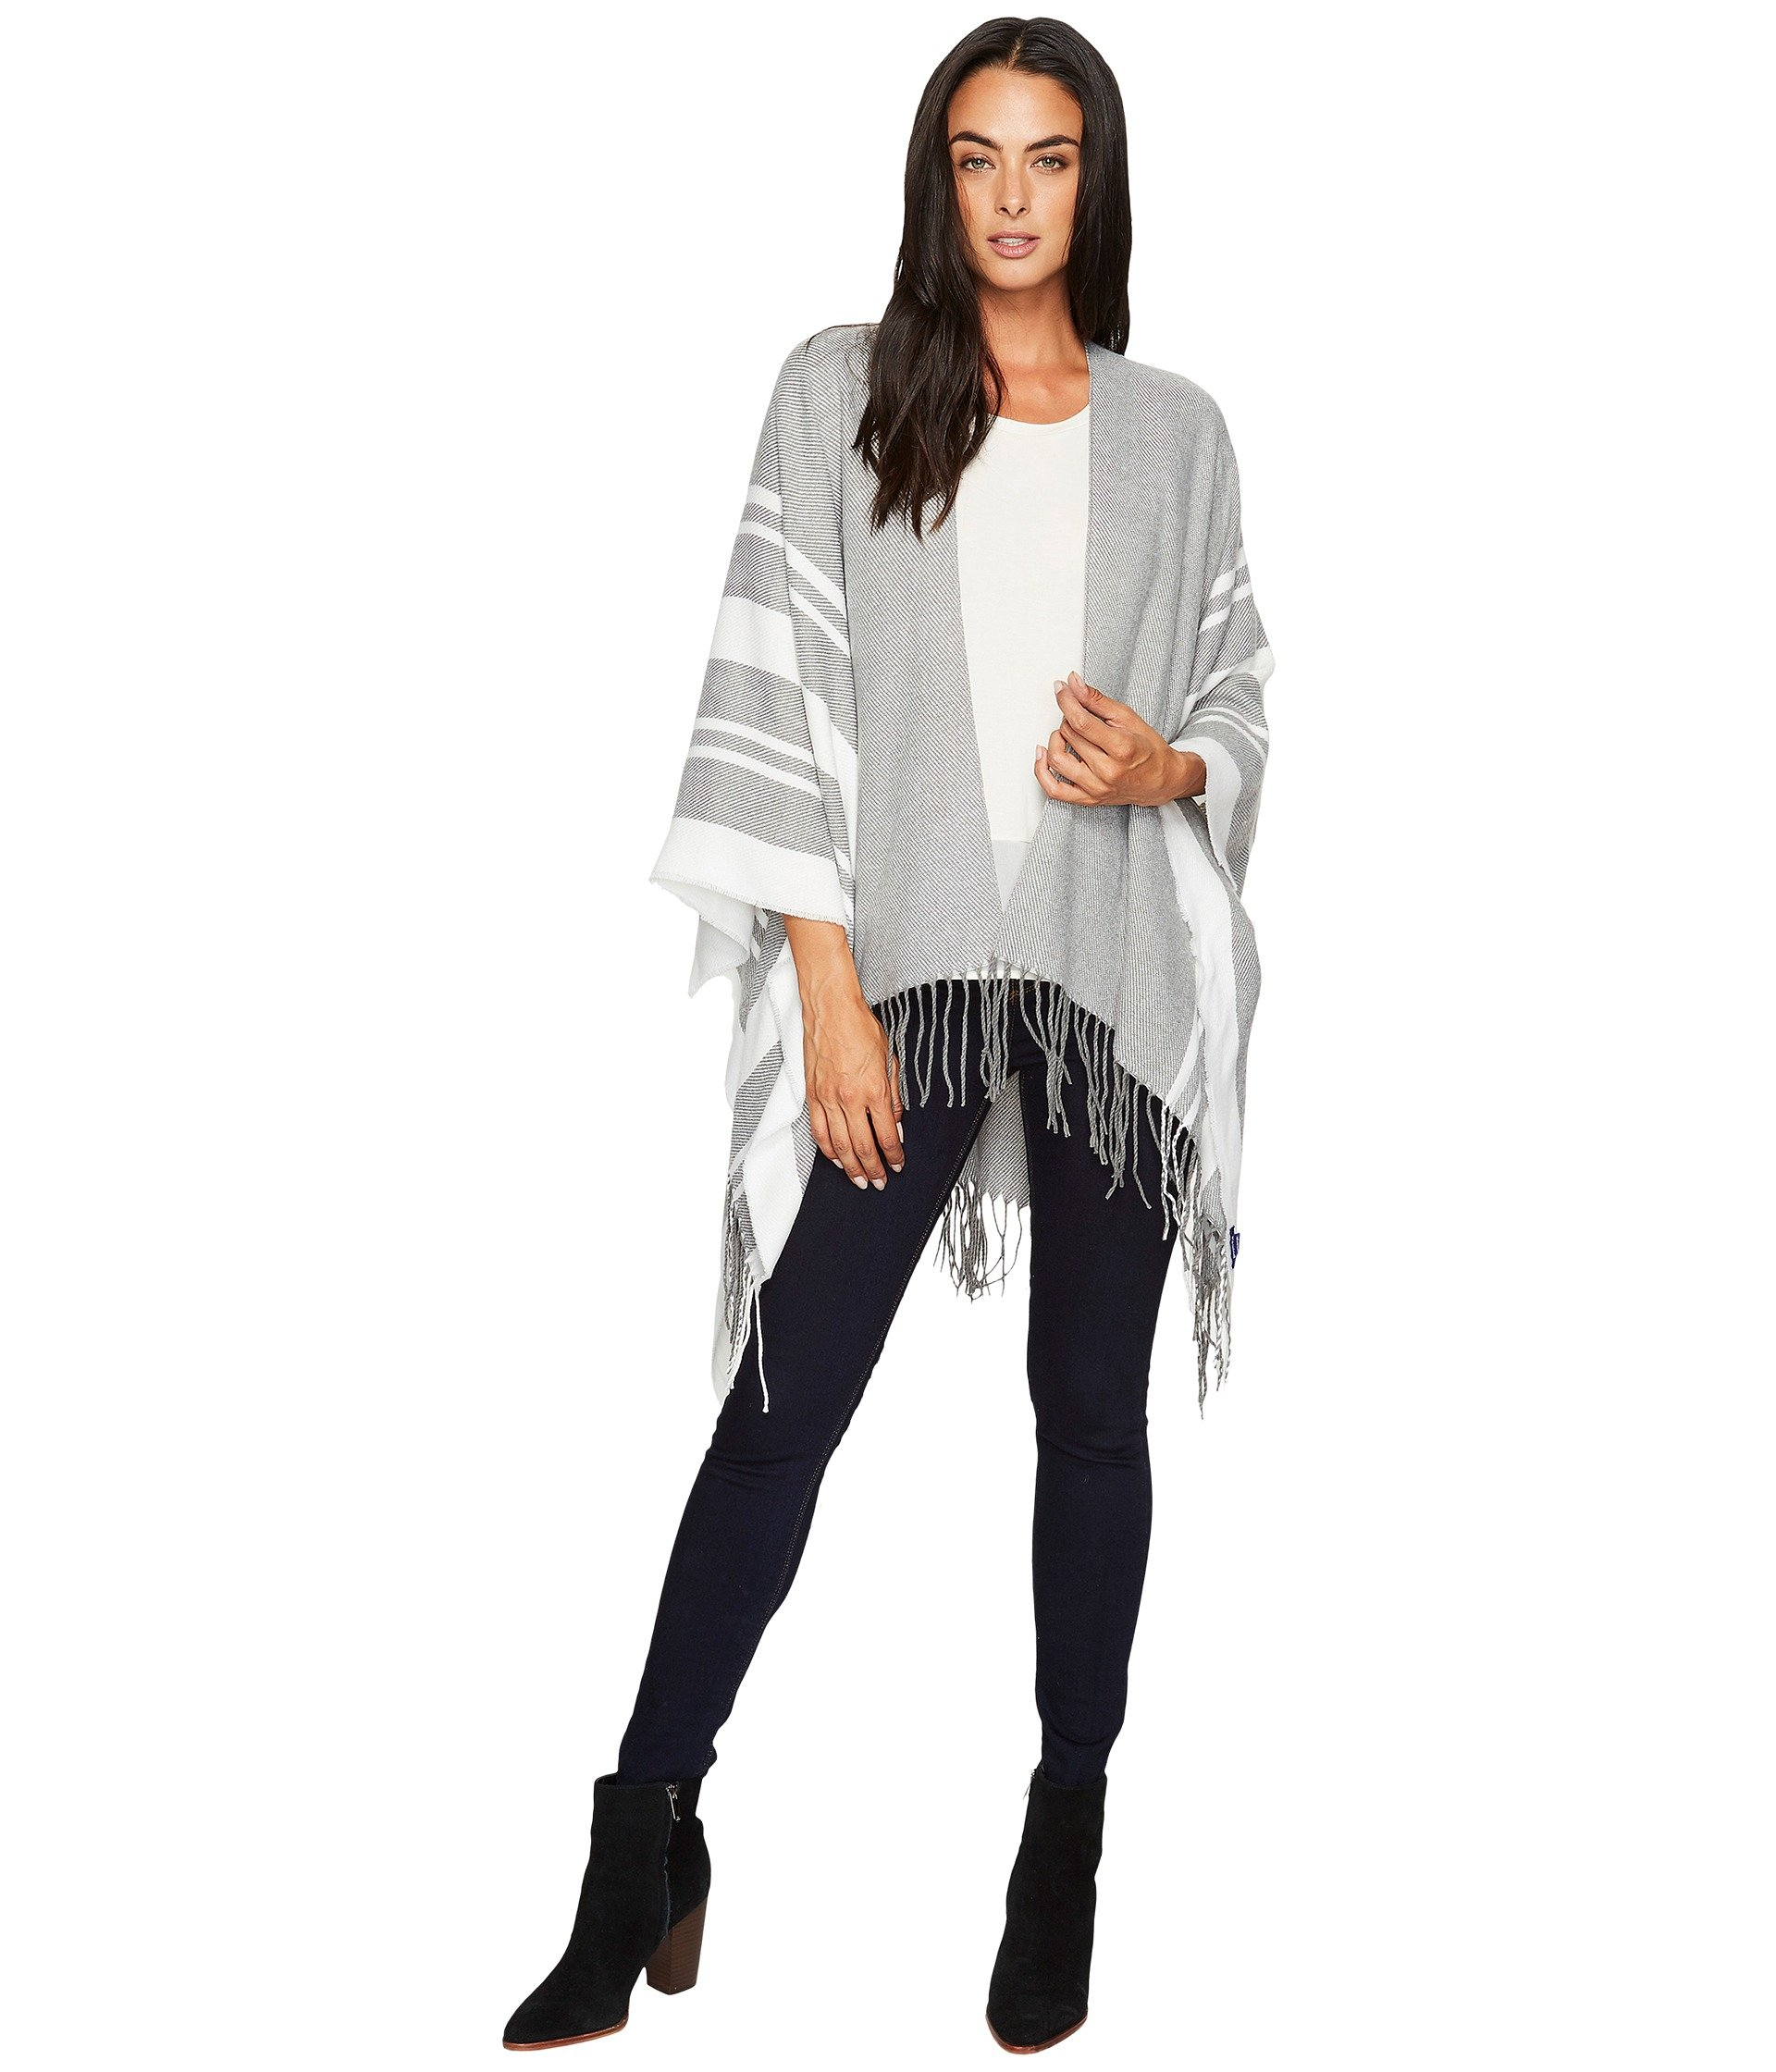 HAT ATTACK Stripe Poncho, Charcoal/Ivory